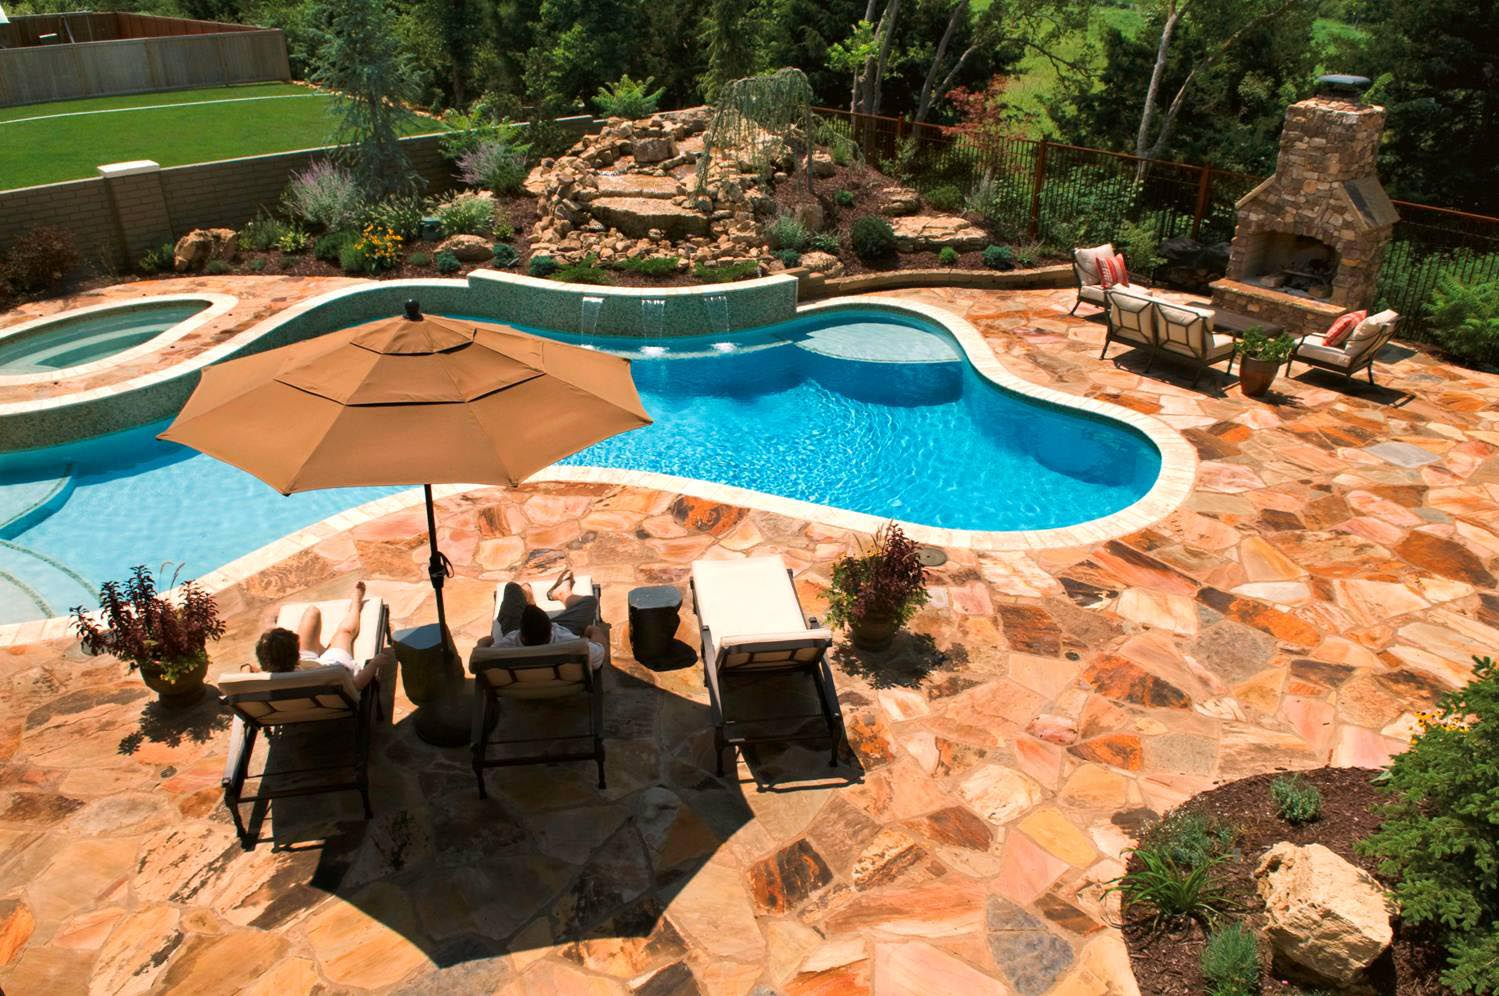 Inground pool deck which to choose backyard design ideas for In ground pool backyard ideas